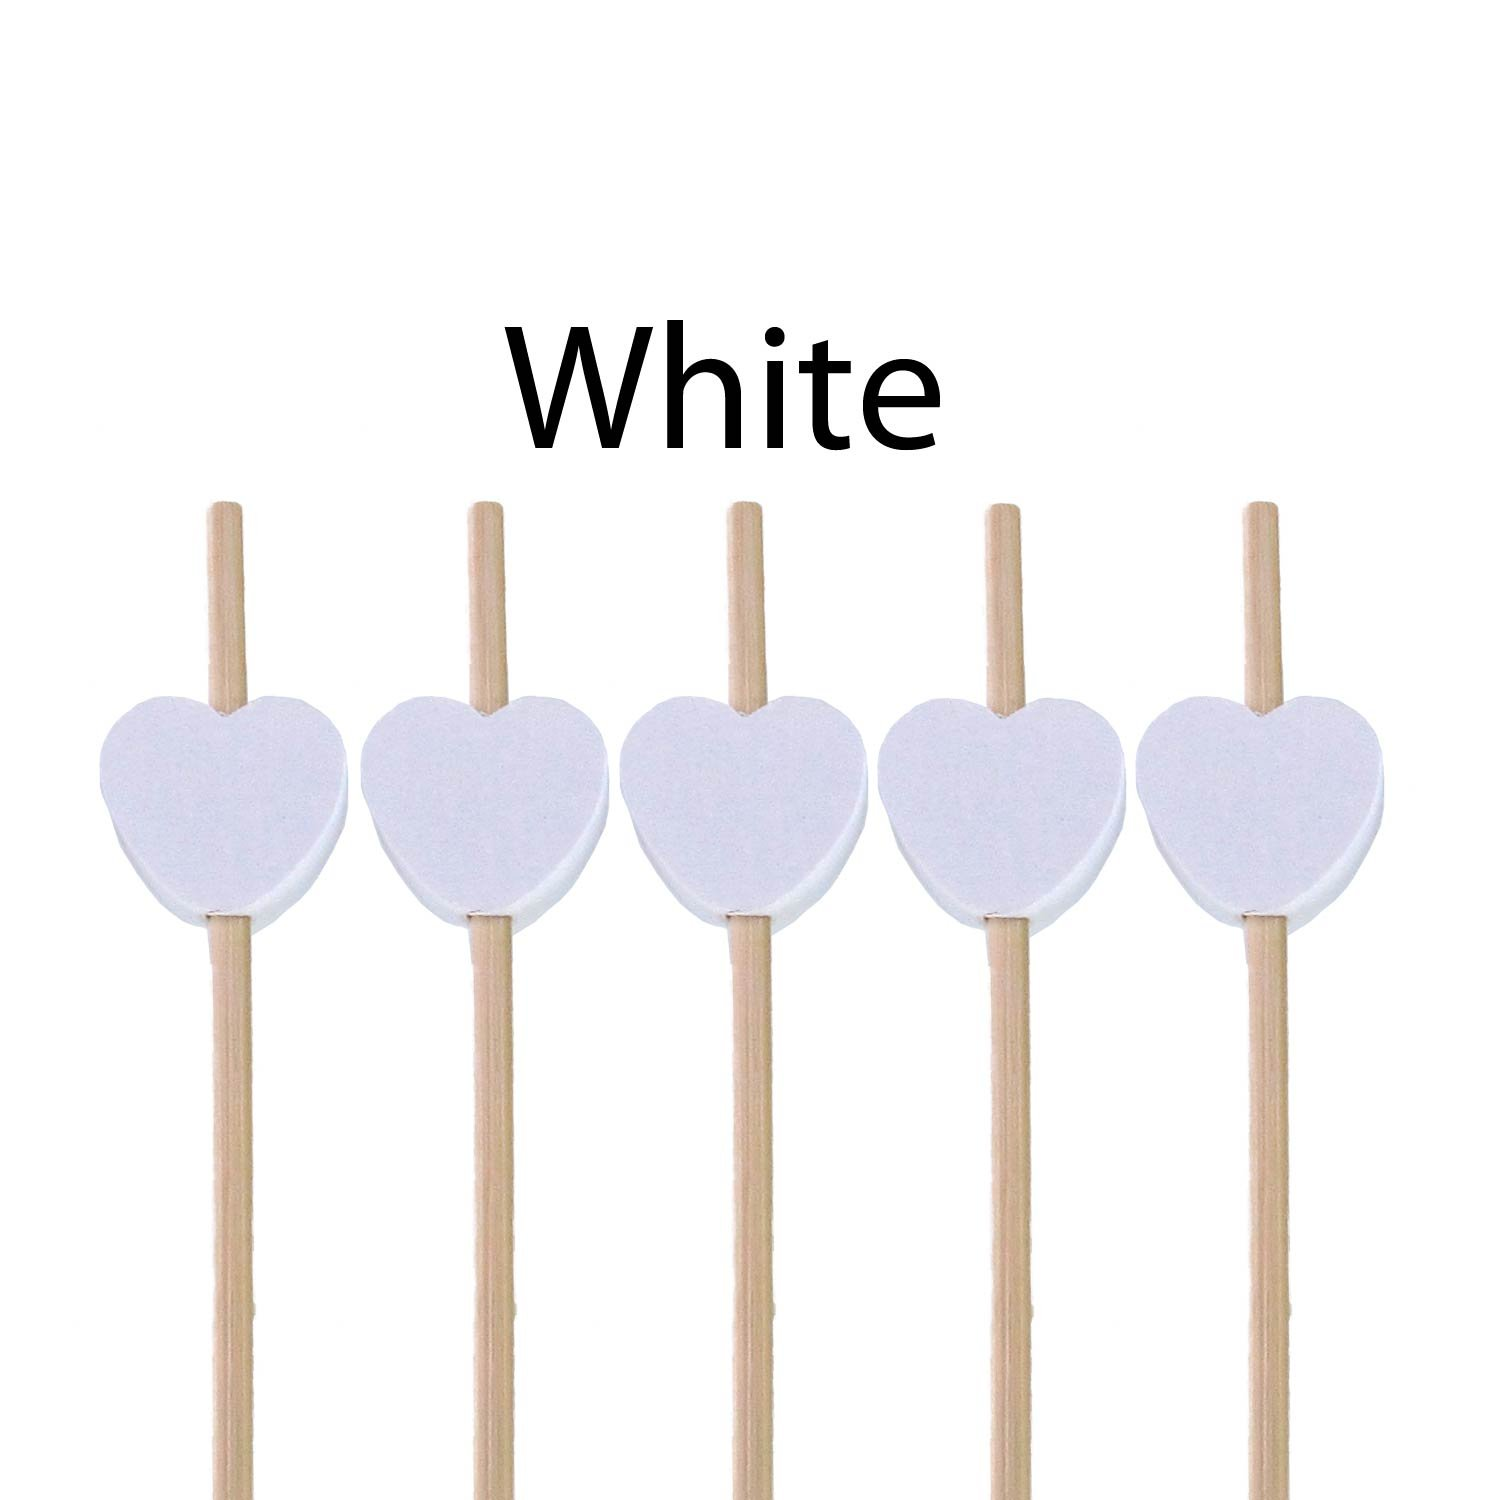 BambooMN 7.1'' Decorative White Heart Bamboo Cocktail Fruit Sandwich Picks Skewers for Catered Events, Holiday's, Restaurants or Buffets Party Supplies, 100 Pieces